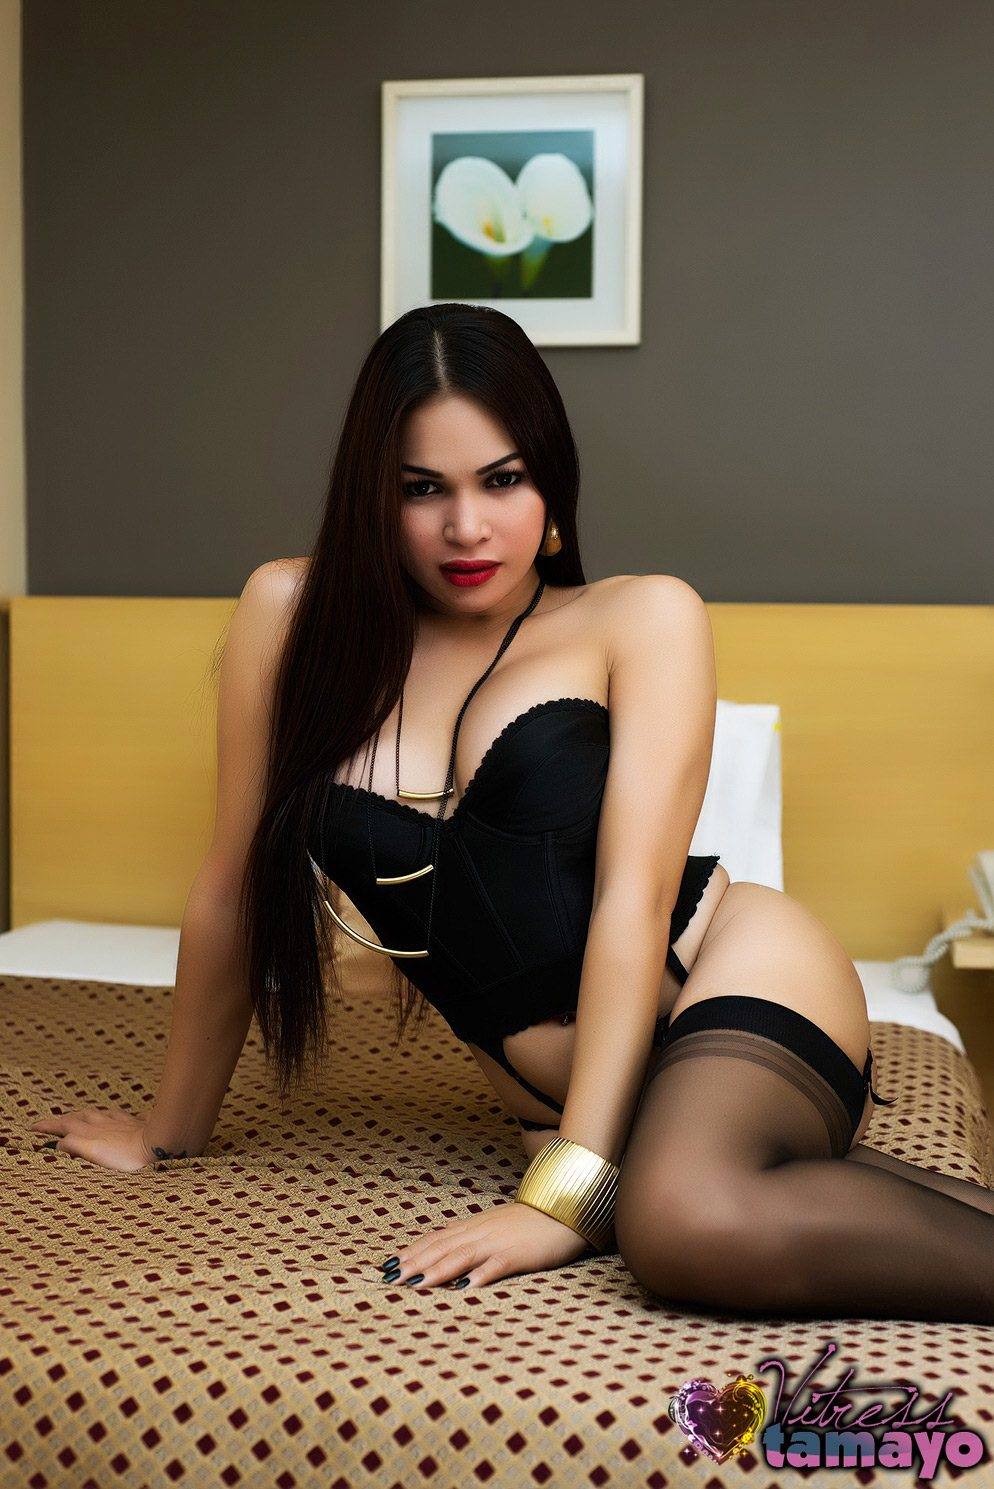 Glamorous Asian Femboy With Cute BOOBS In Stockings And